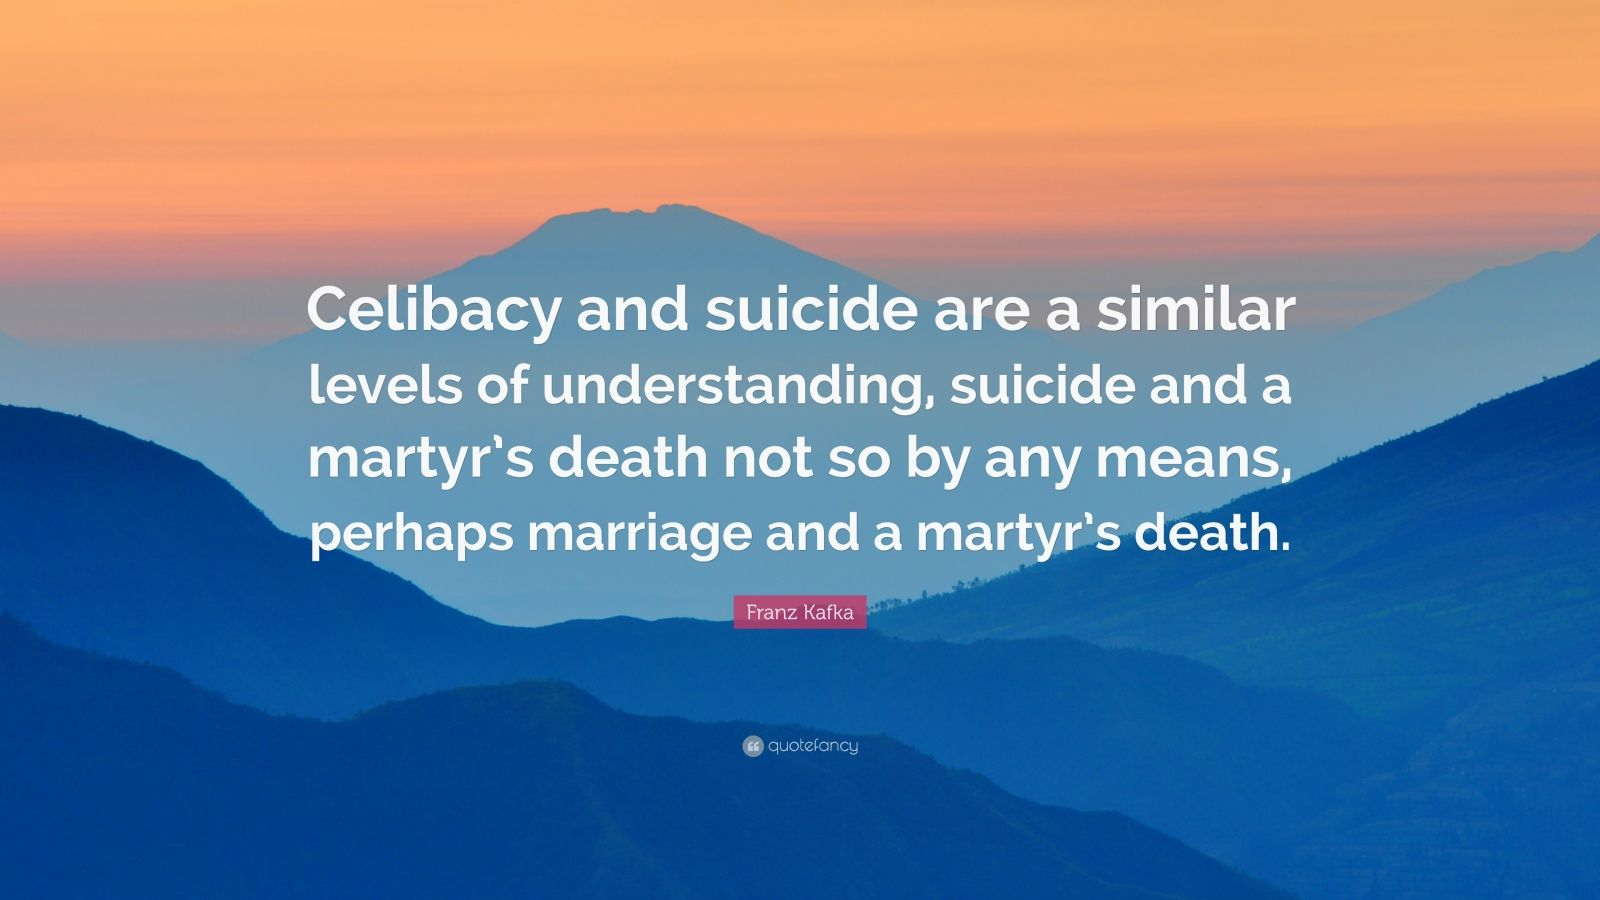 """Franz Kafka Quote: """"Celibacy and suicide are a similar levels of understanding, suicide and a martyr's death not so by any means, perhaps marriage and a martyr's death."""""""